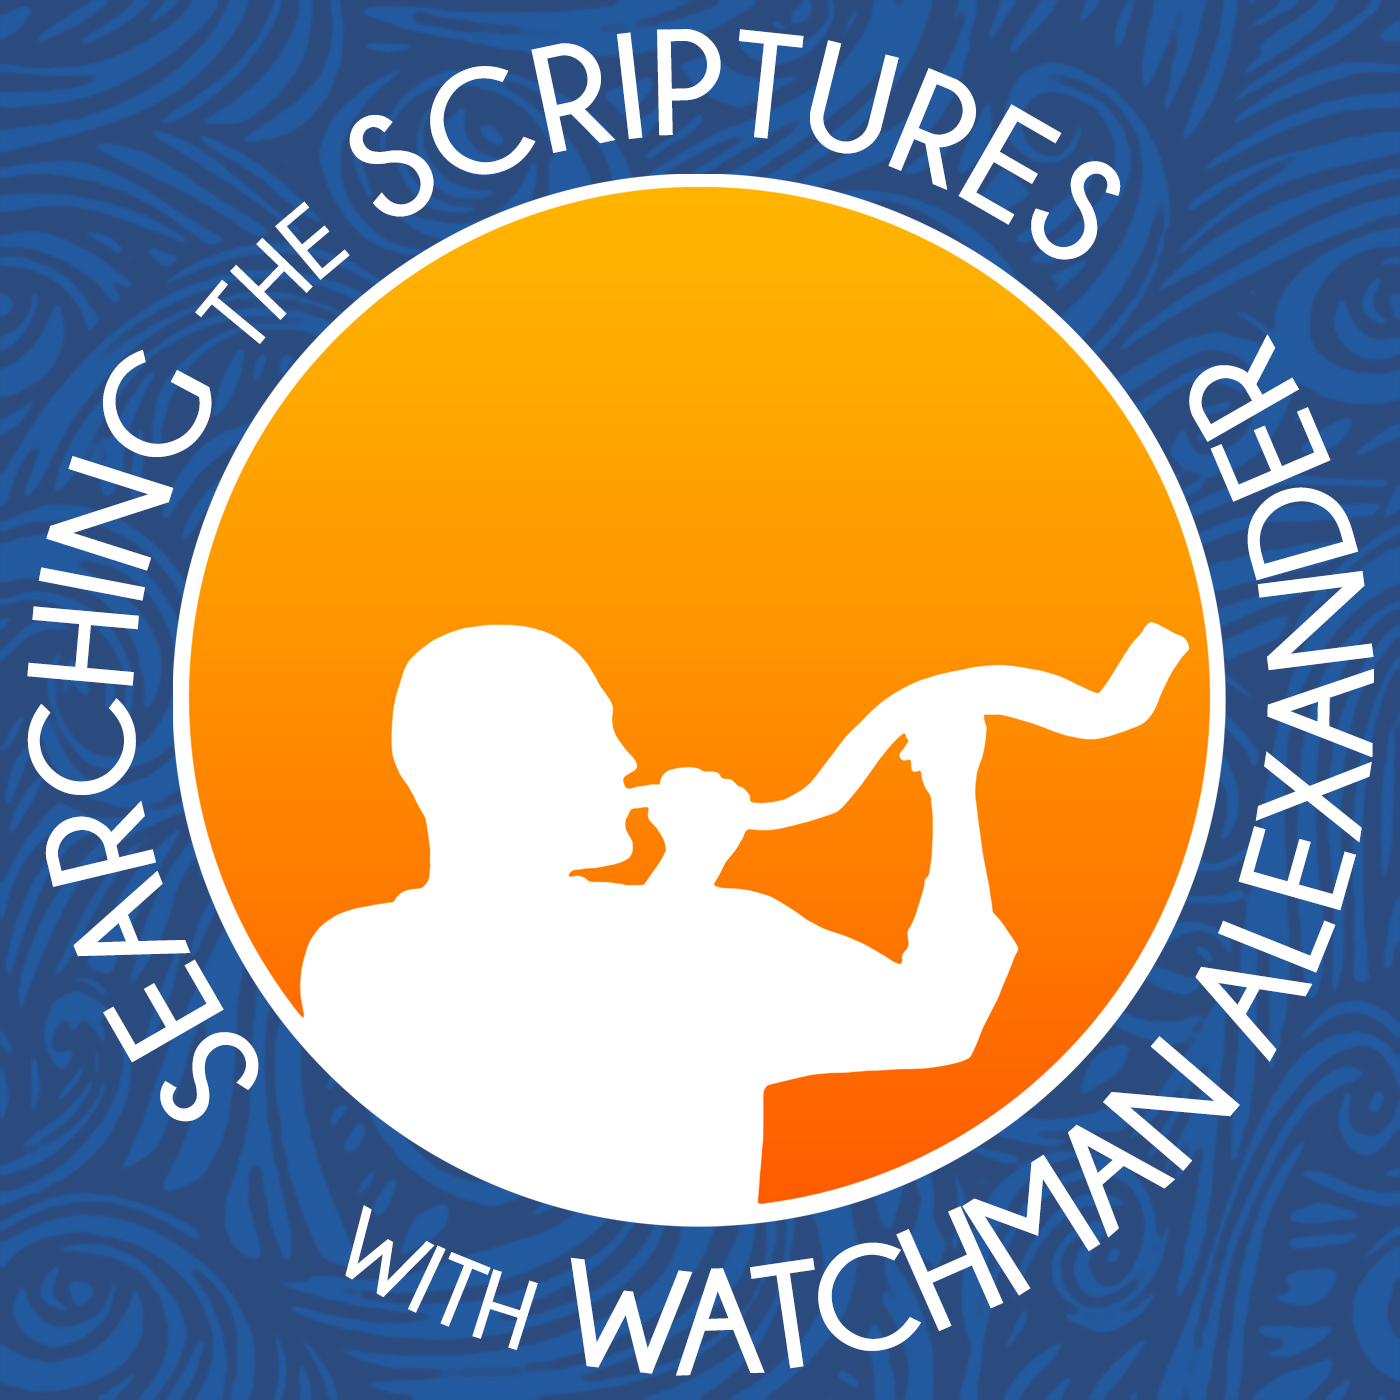 Searching the Scriptures with Watchman Alexander show art